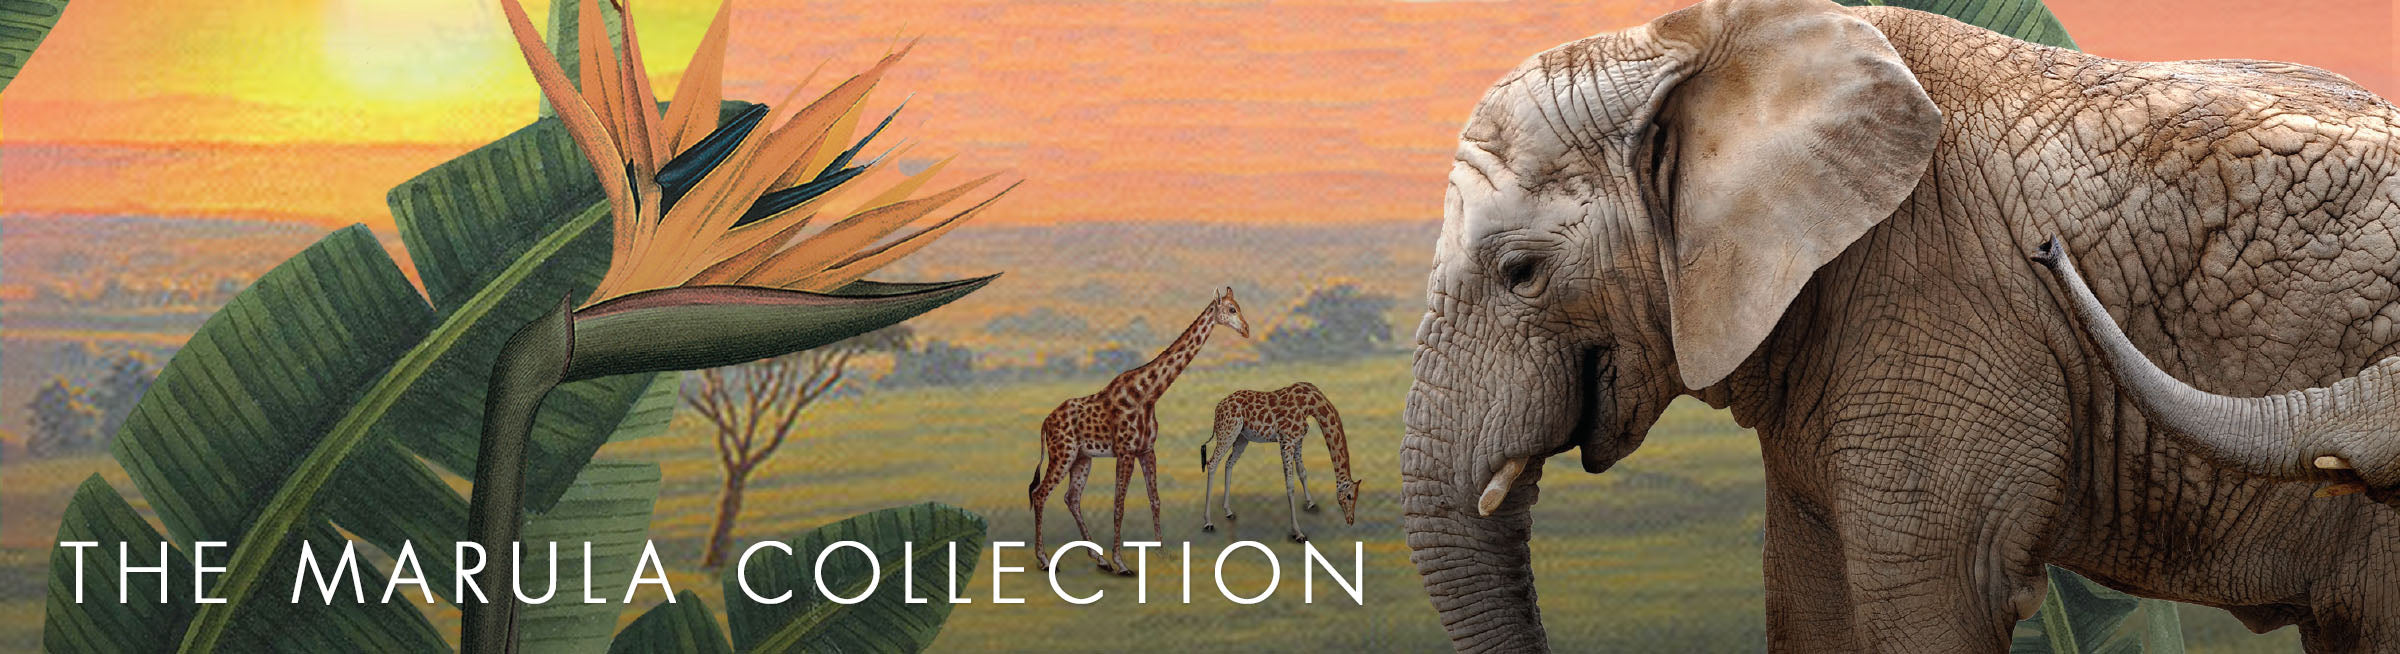 The Marula Collection